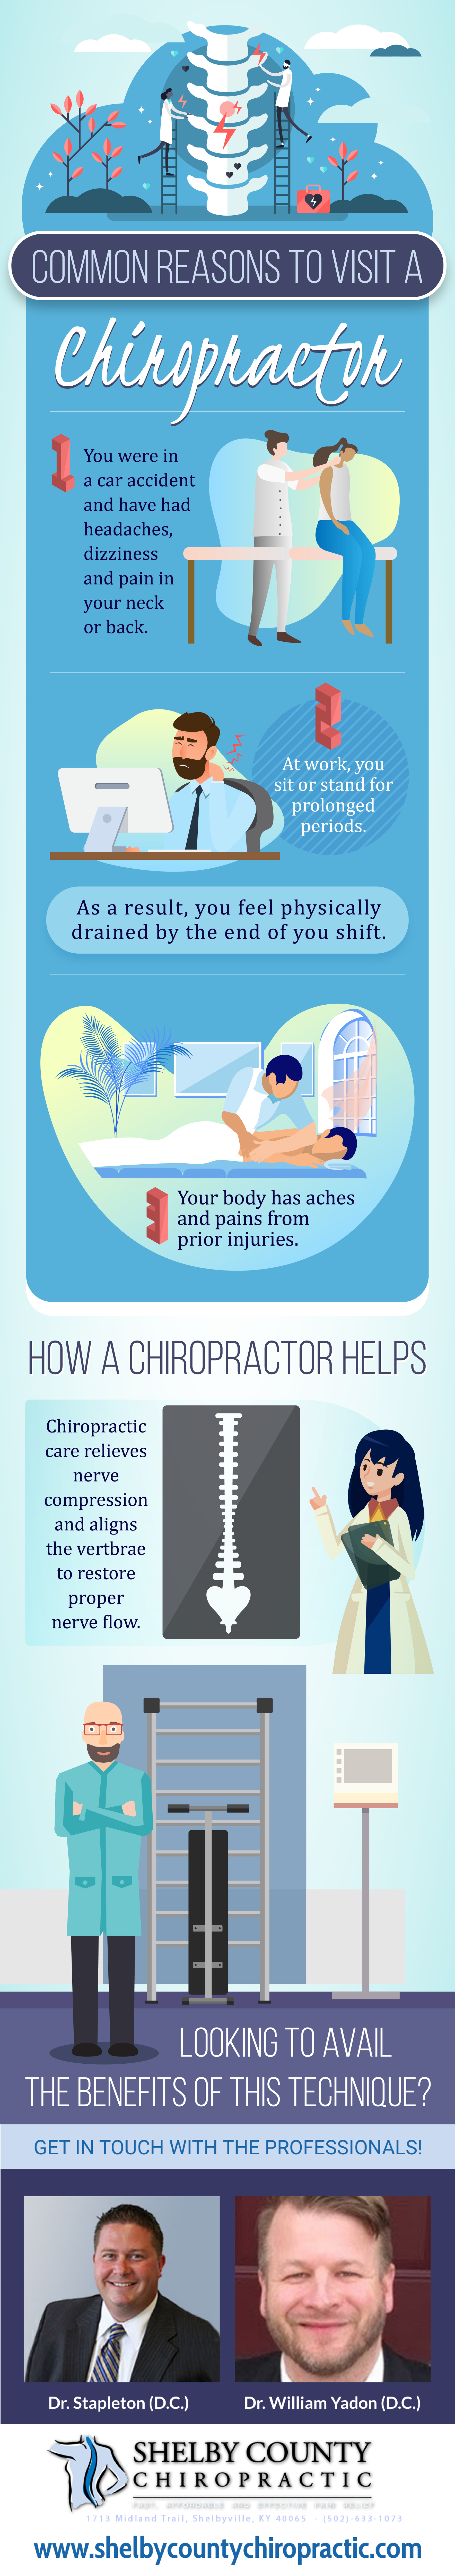 Common-Reasons-To-Visit-A-Chiropractor